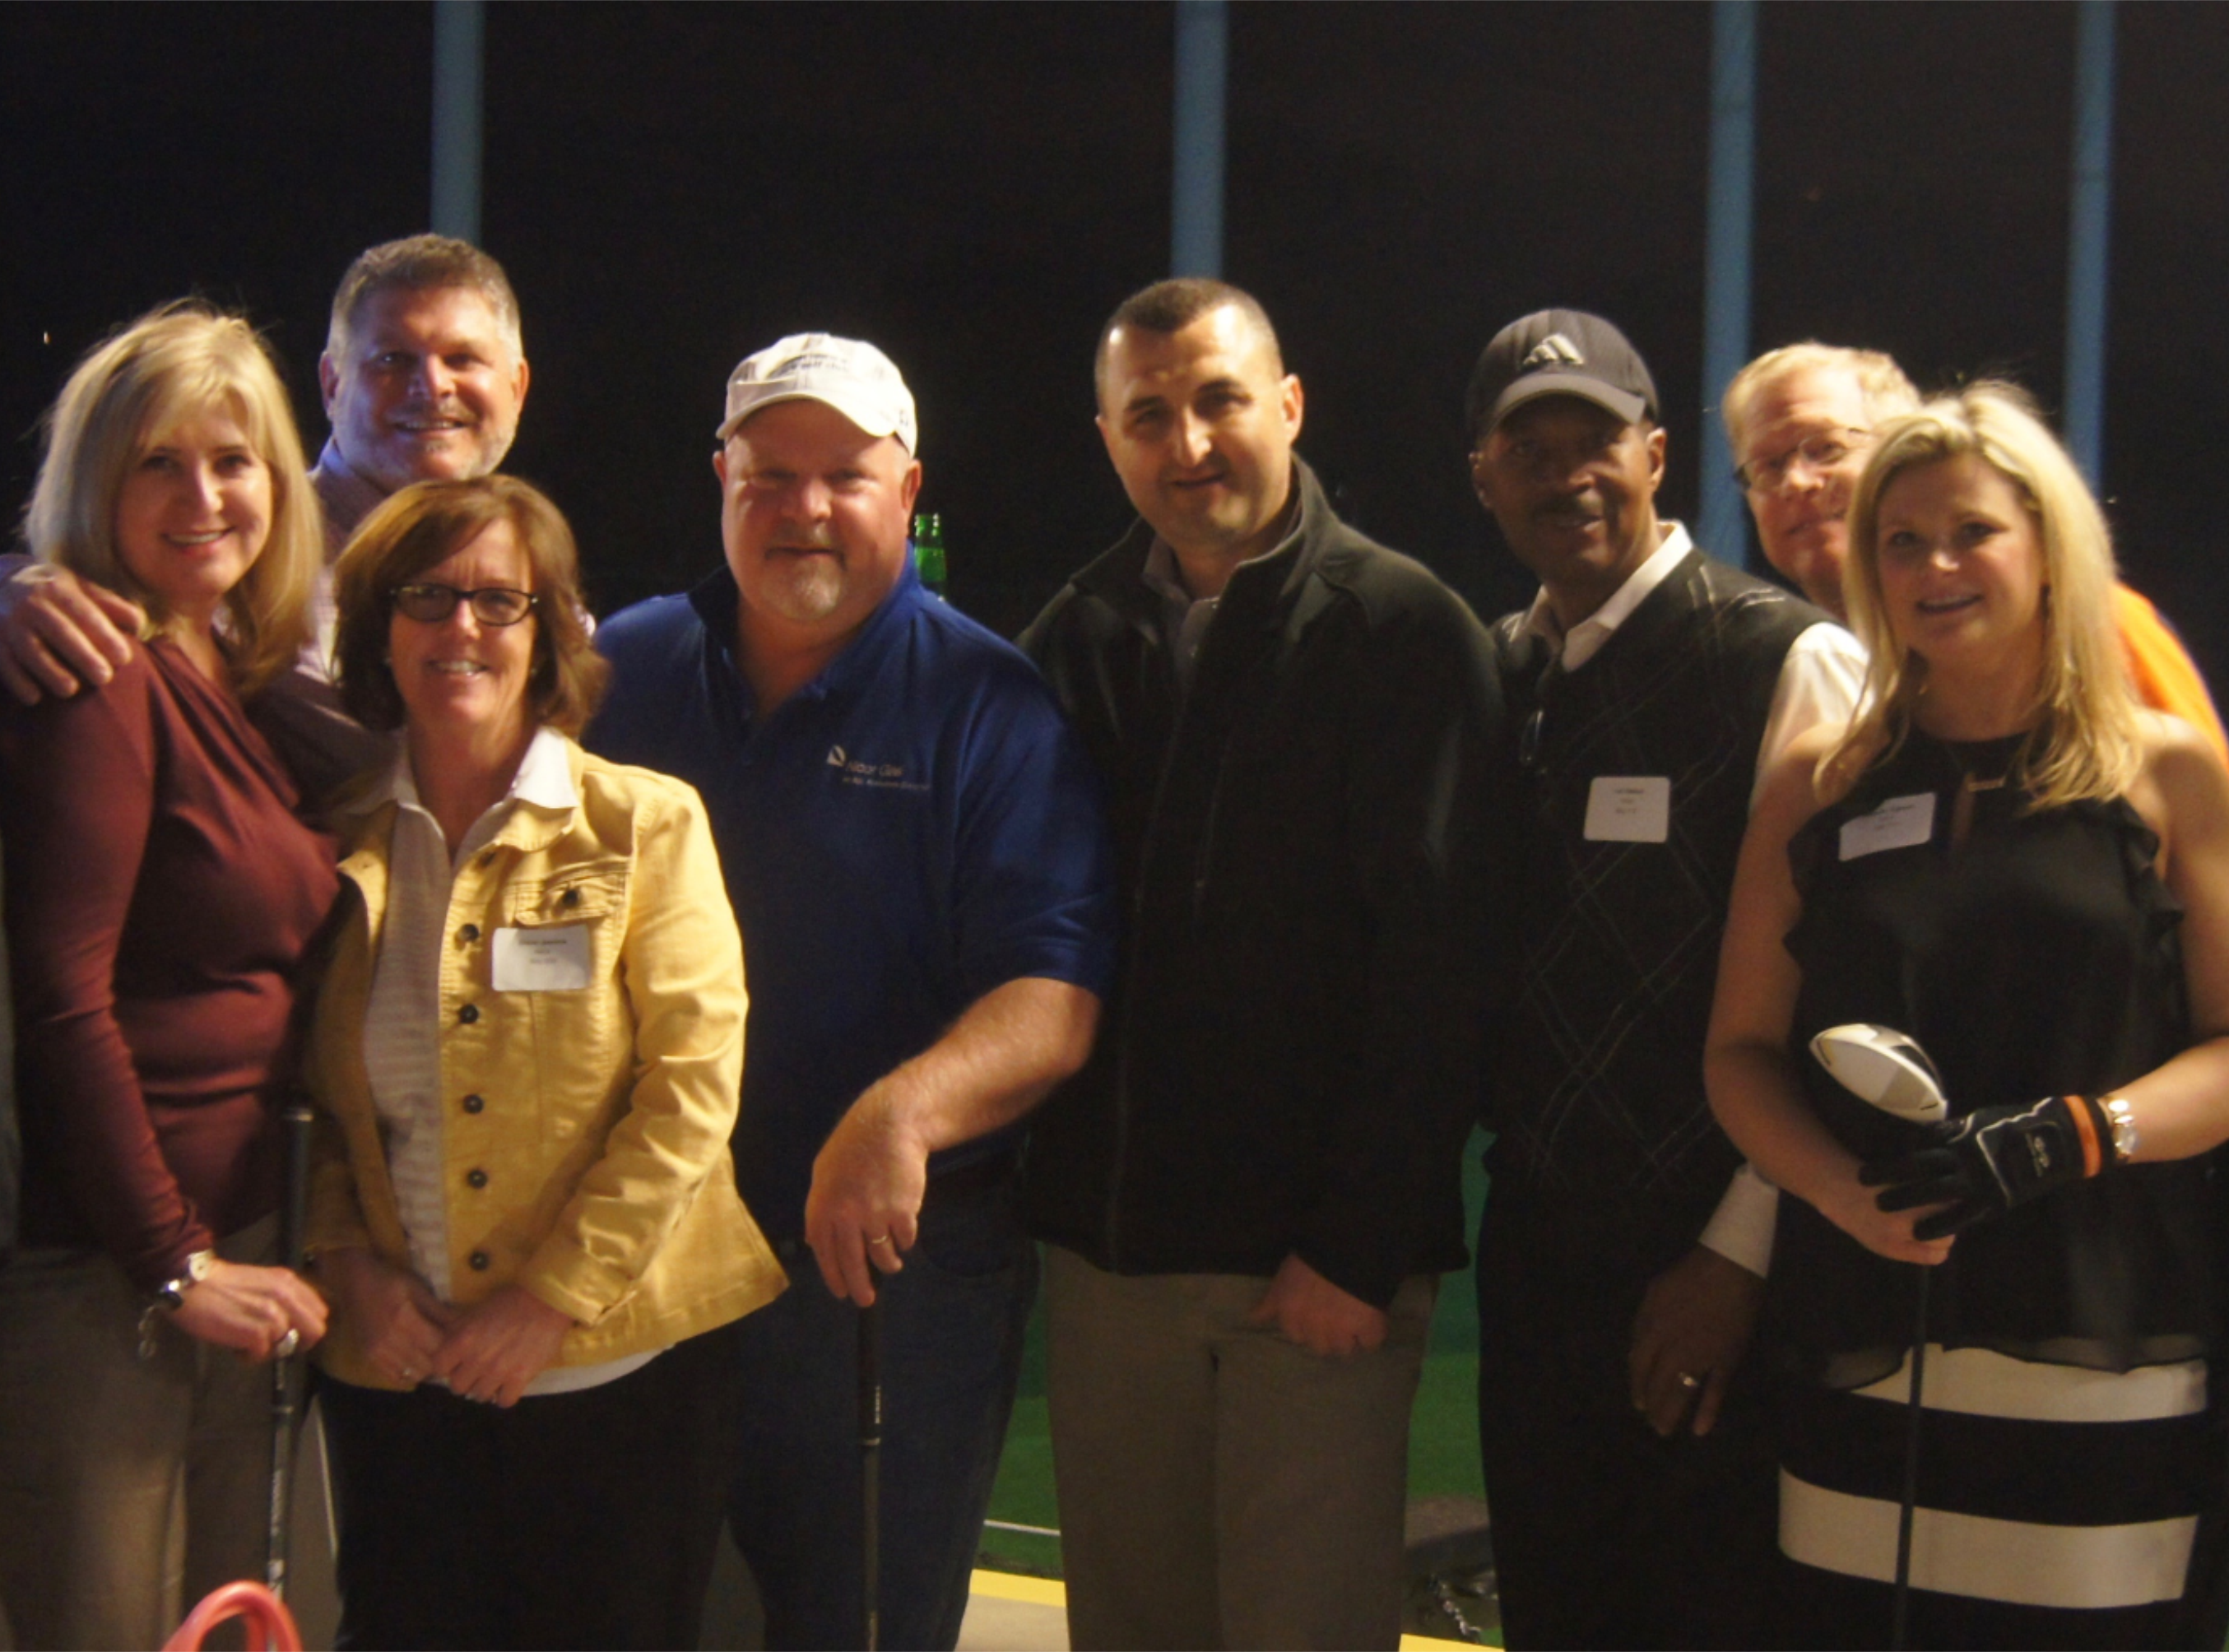 JA Western Division Top Golf Event